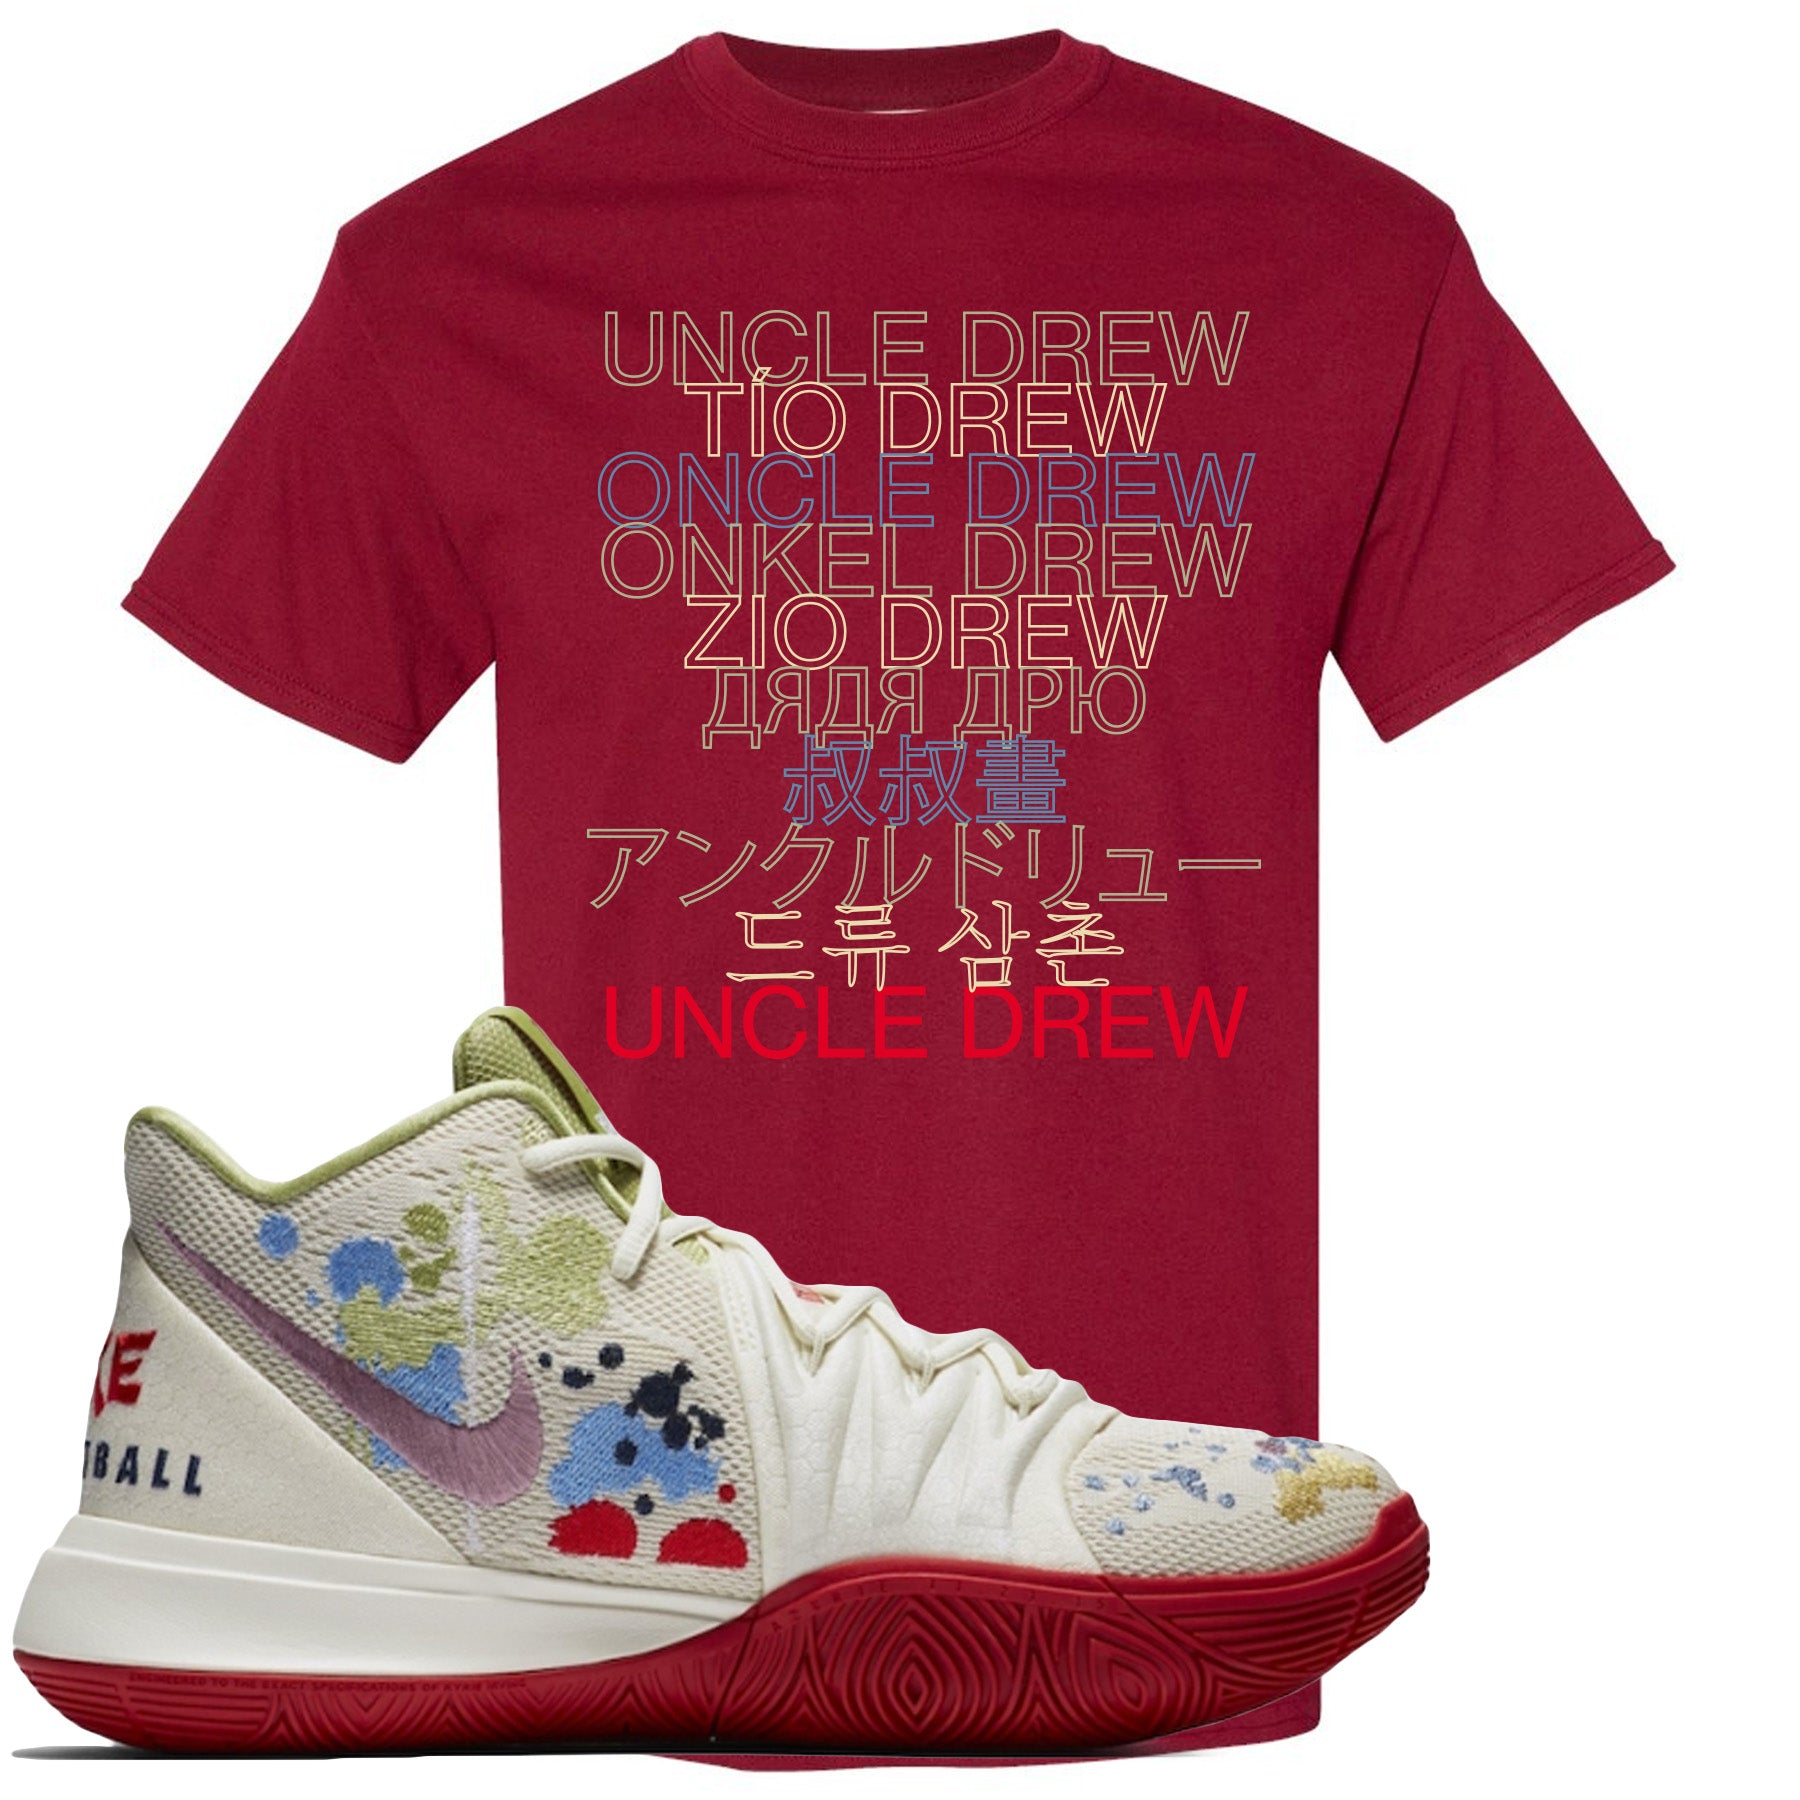 897edcd3b Bandulu x Nike Kyrie 5 Sneaker Match Uncle Drew Multi Language Cardinal Red  T-Shirt